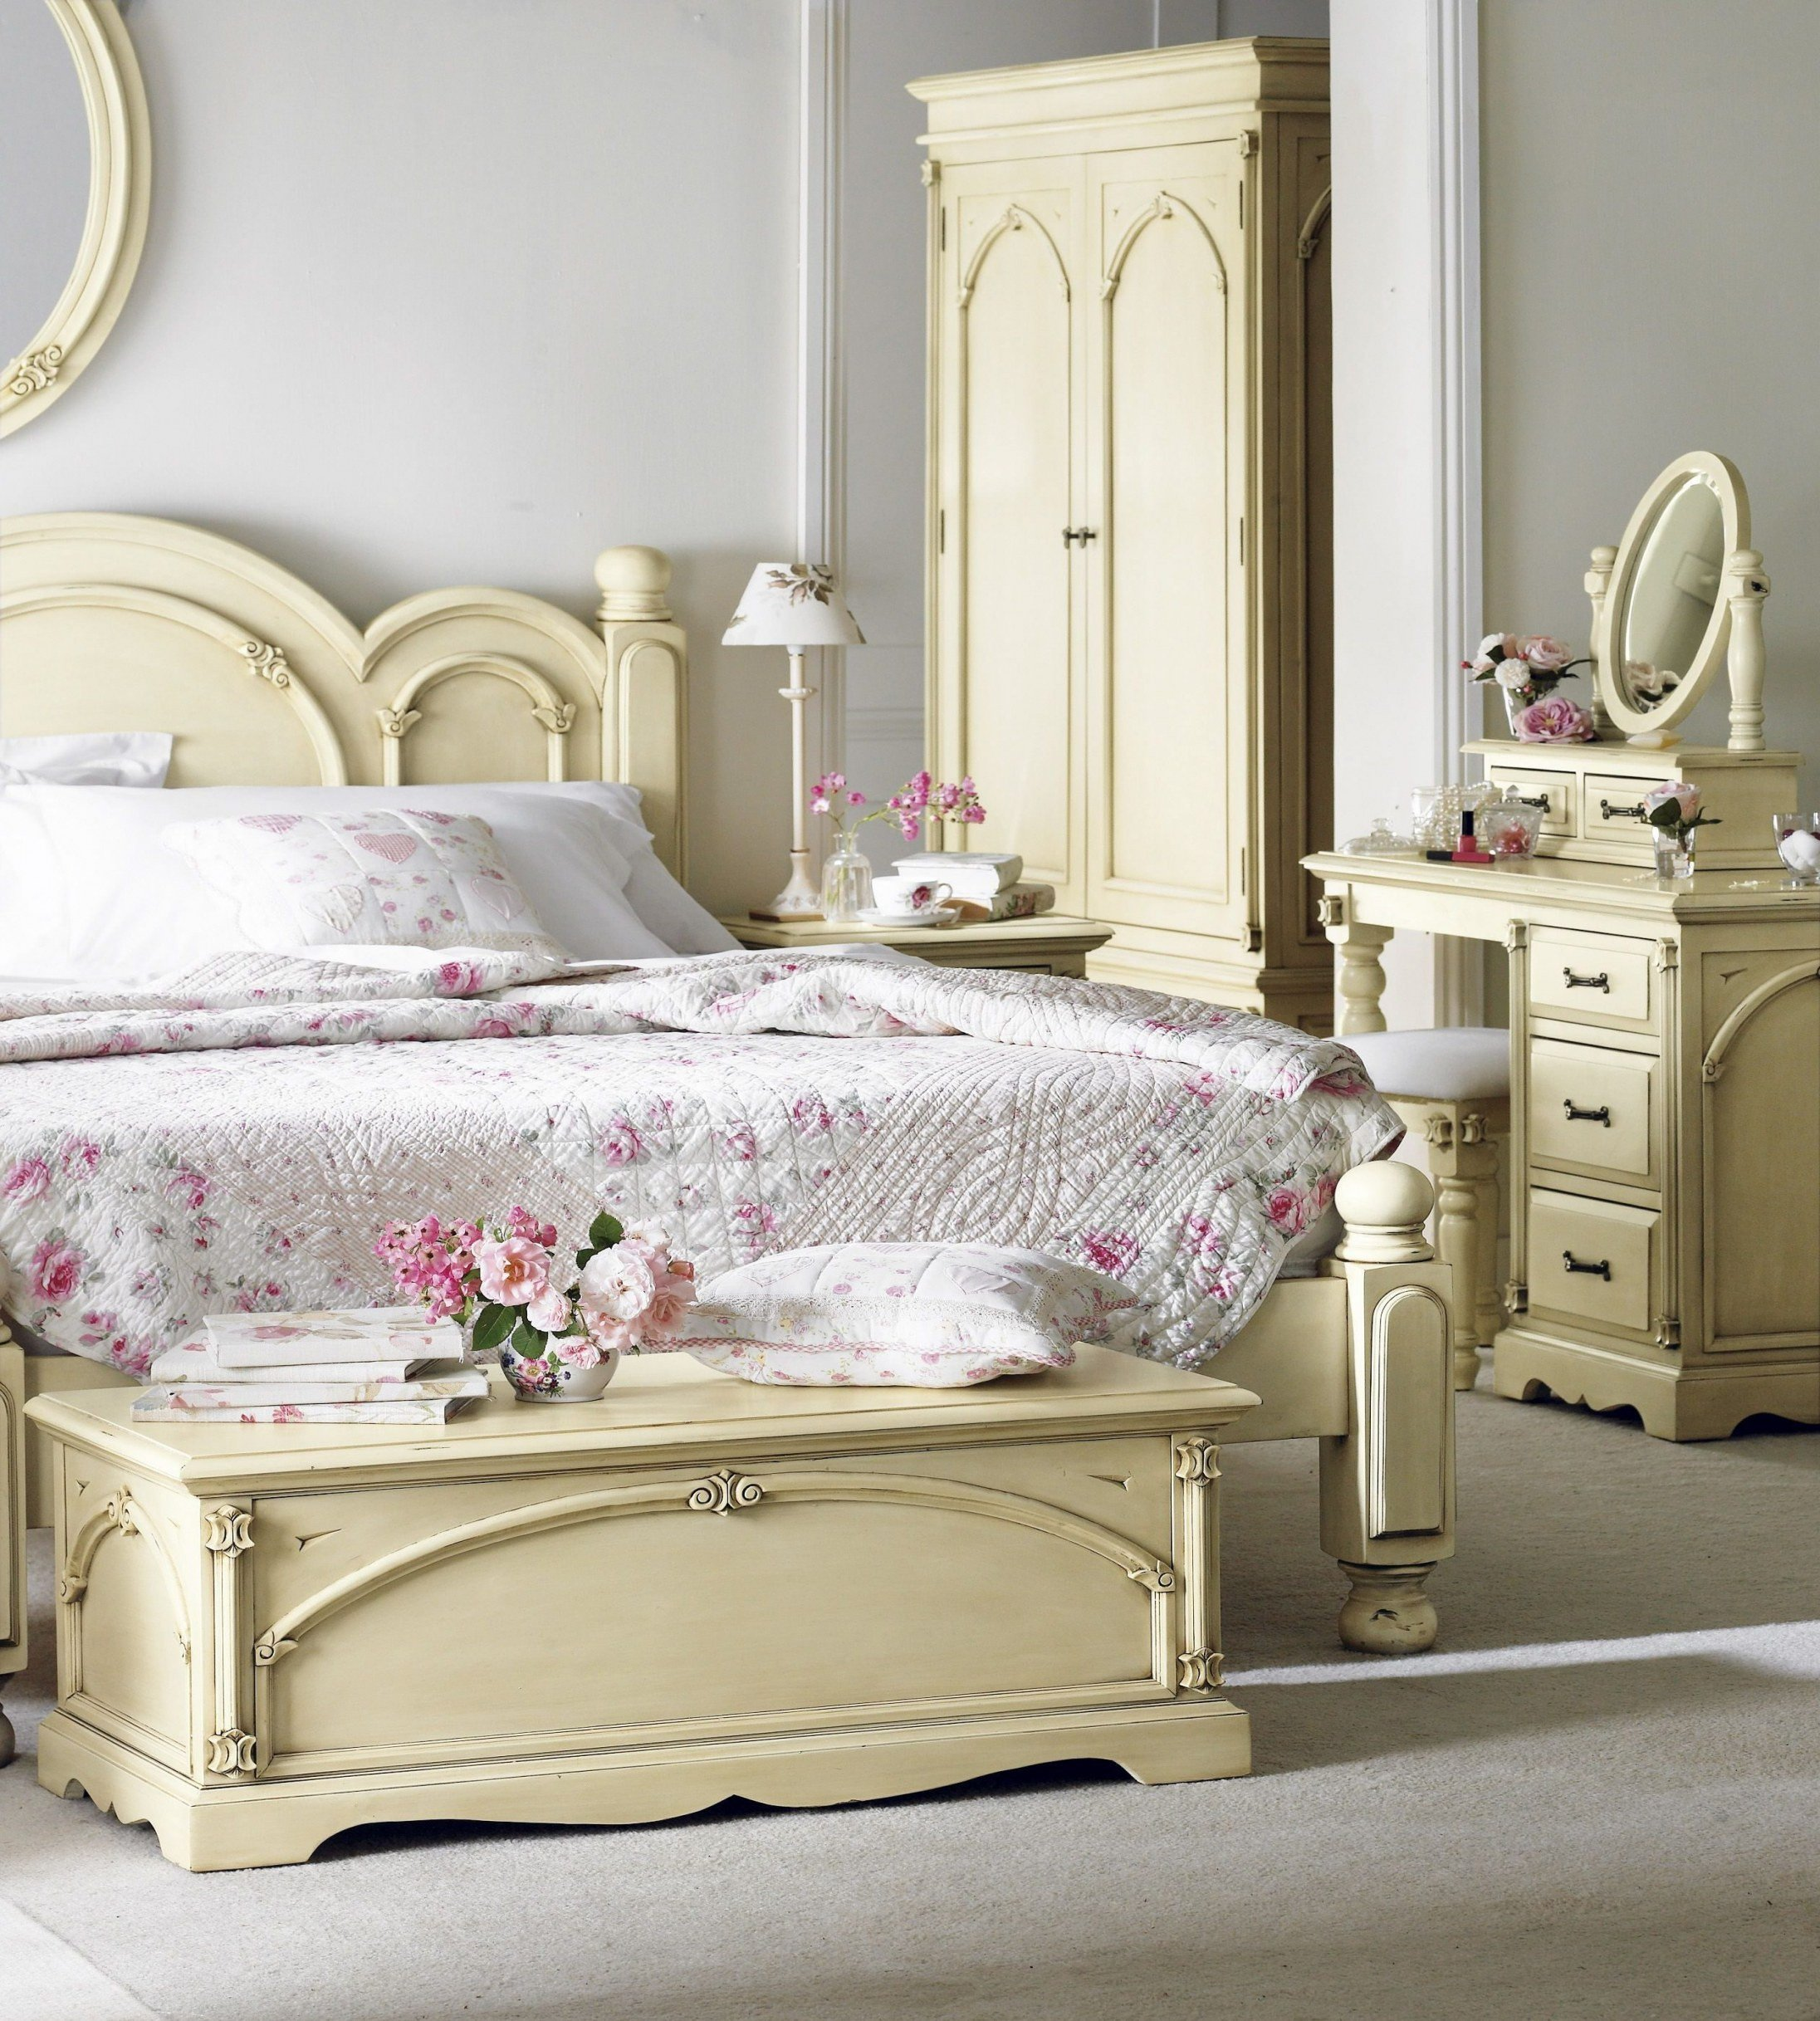 Teen Girl Bedroom Set Beautiful Teen Girls Bedroom Ideas Bedroom Cool Gray Bedroom Decor